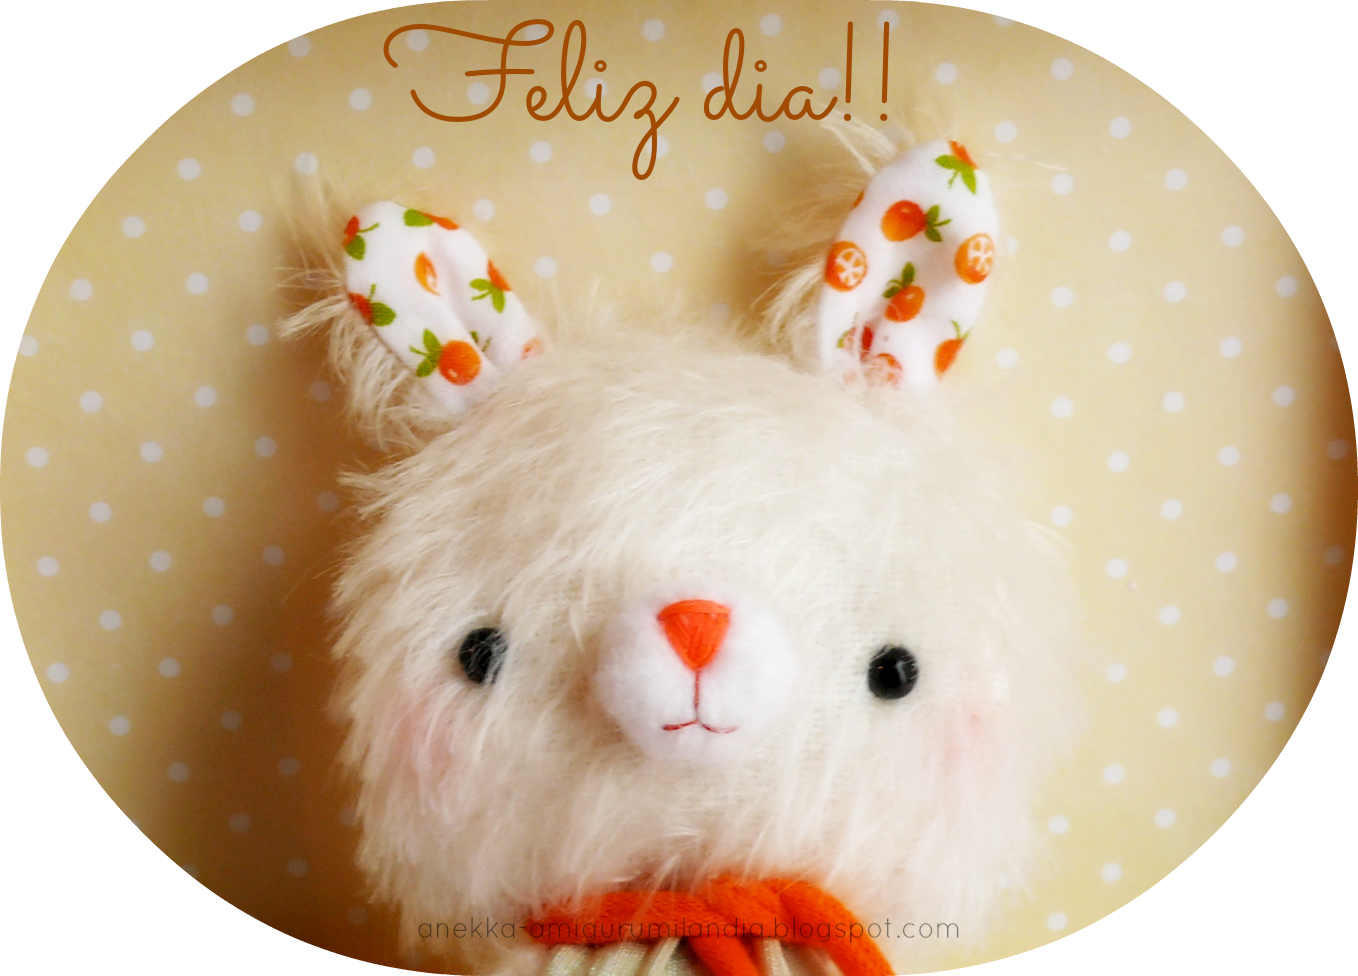 plush doll, sweet and cute